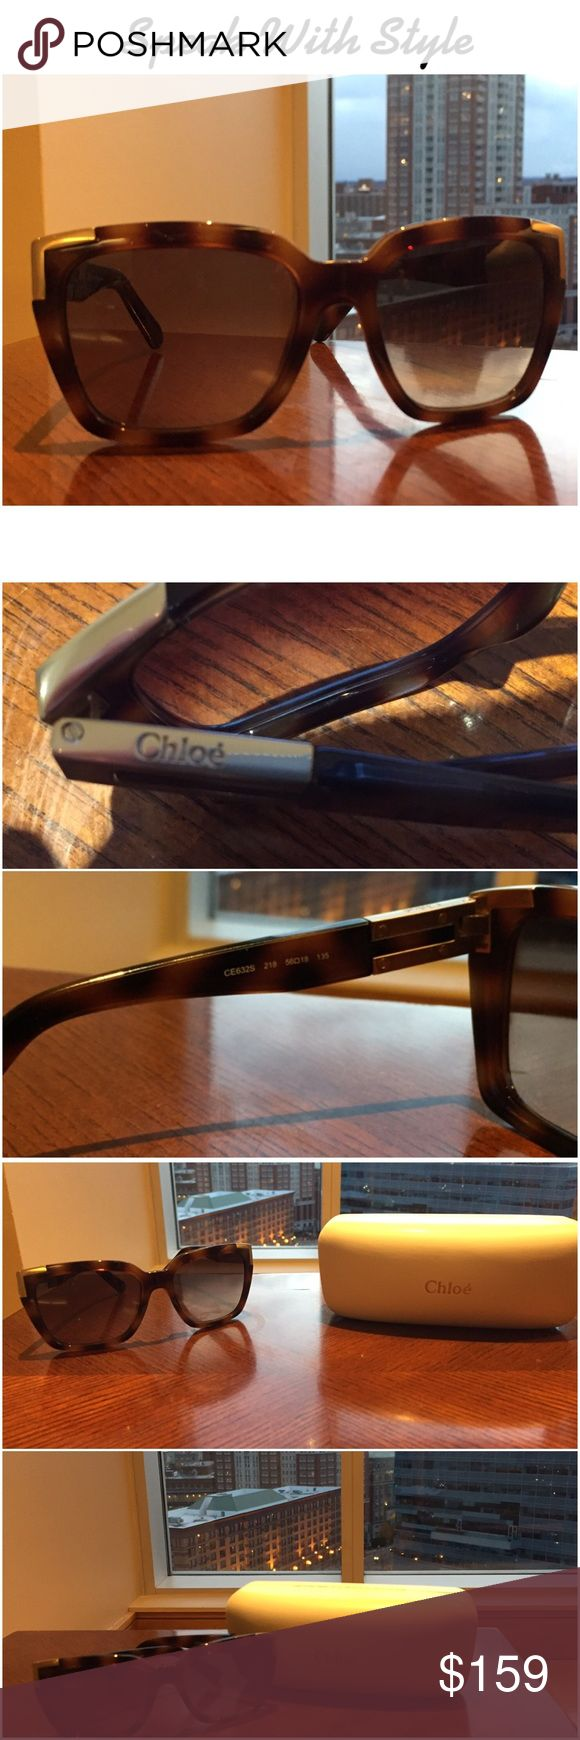 NWOT: Chloe Oversized Sunglasses 😎 NWOT: Chloe oversized sunglasses. Color is brown and gold. Made in Italy. Gold tone metal accents on arms and frames at temple. Brand name on top left of arm. Very comfortable and fit well on the face but I feel they are a little too big for me. Chloe Accessories Sunglasses